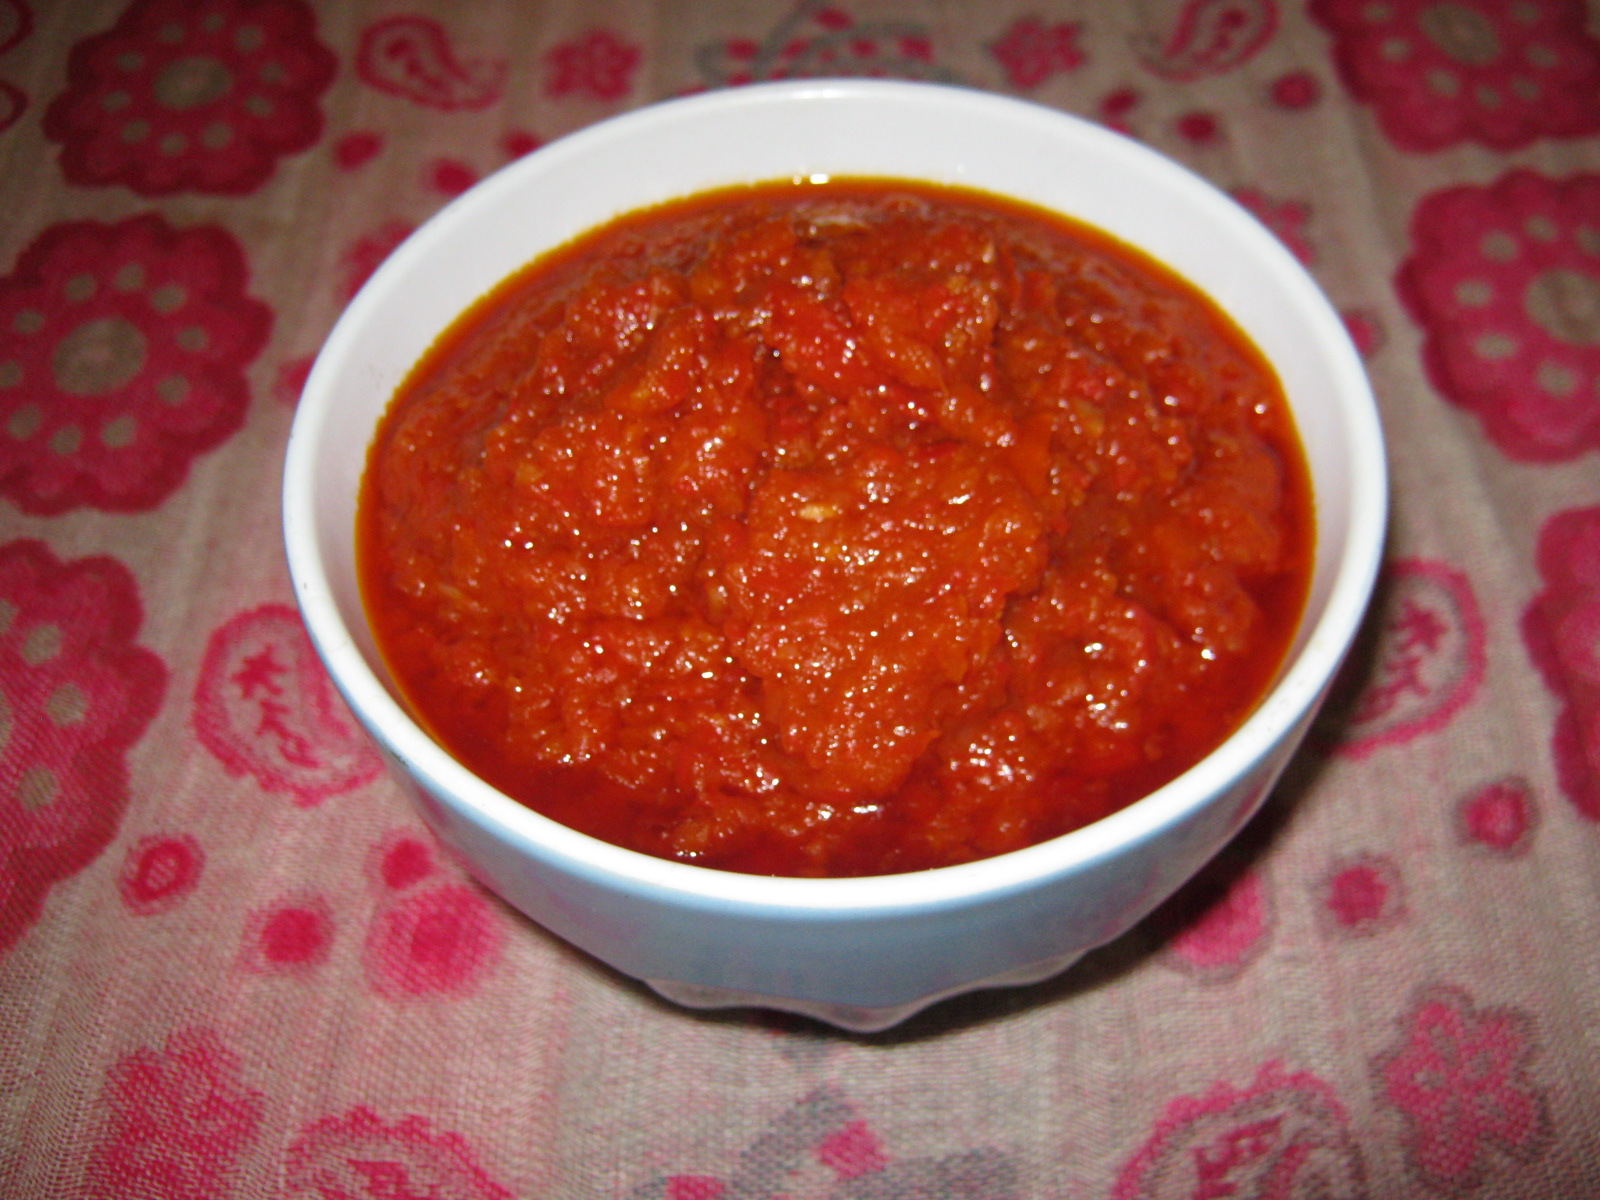 Find this hot Ata Dindin and other condiment recipes